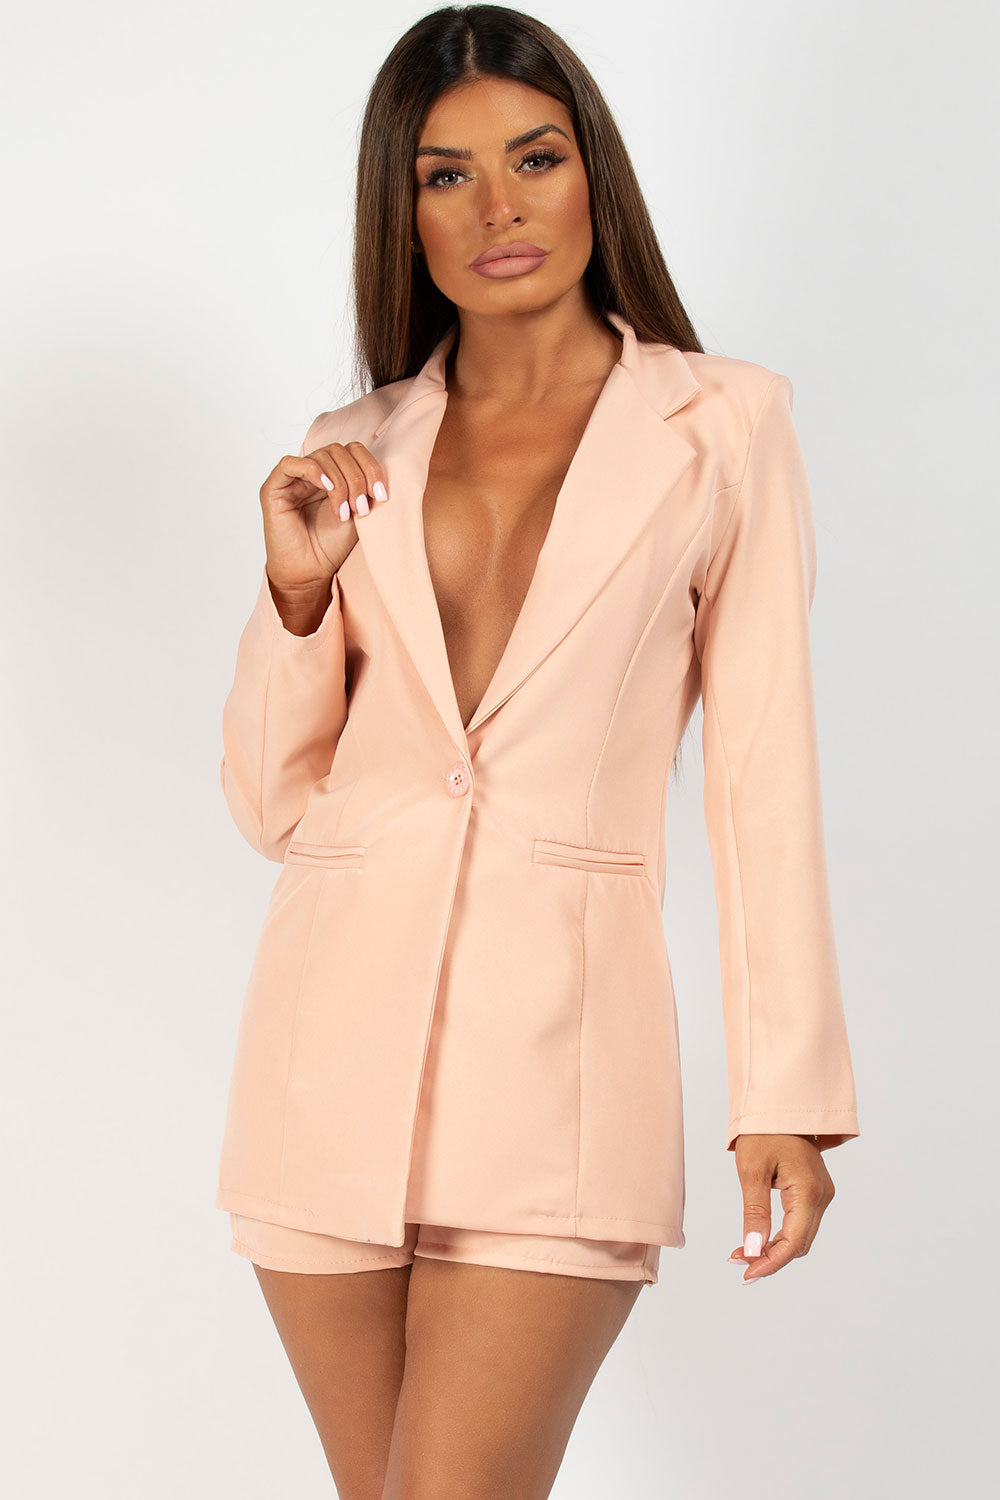 nude buckle detail shorts and blazer co ord